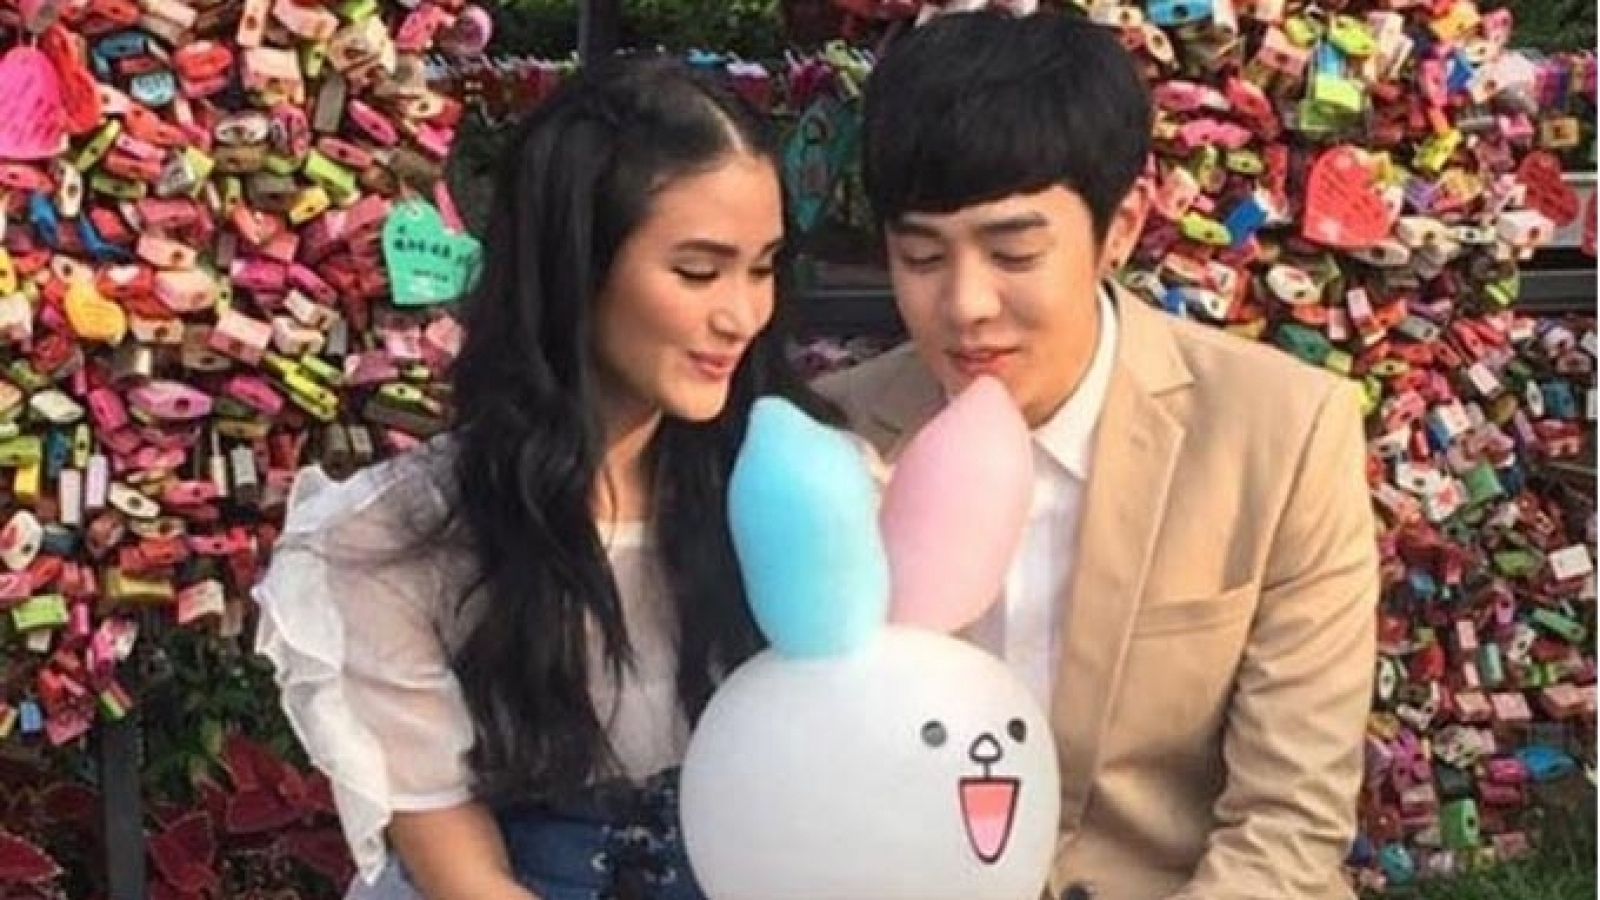 Alexander Lee on kissing Heart Evangelista: